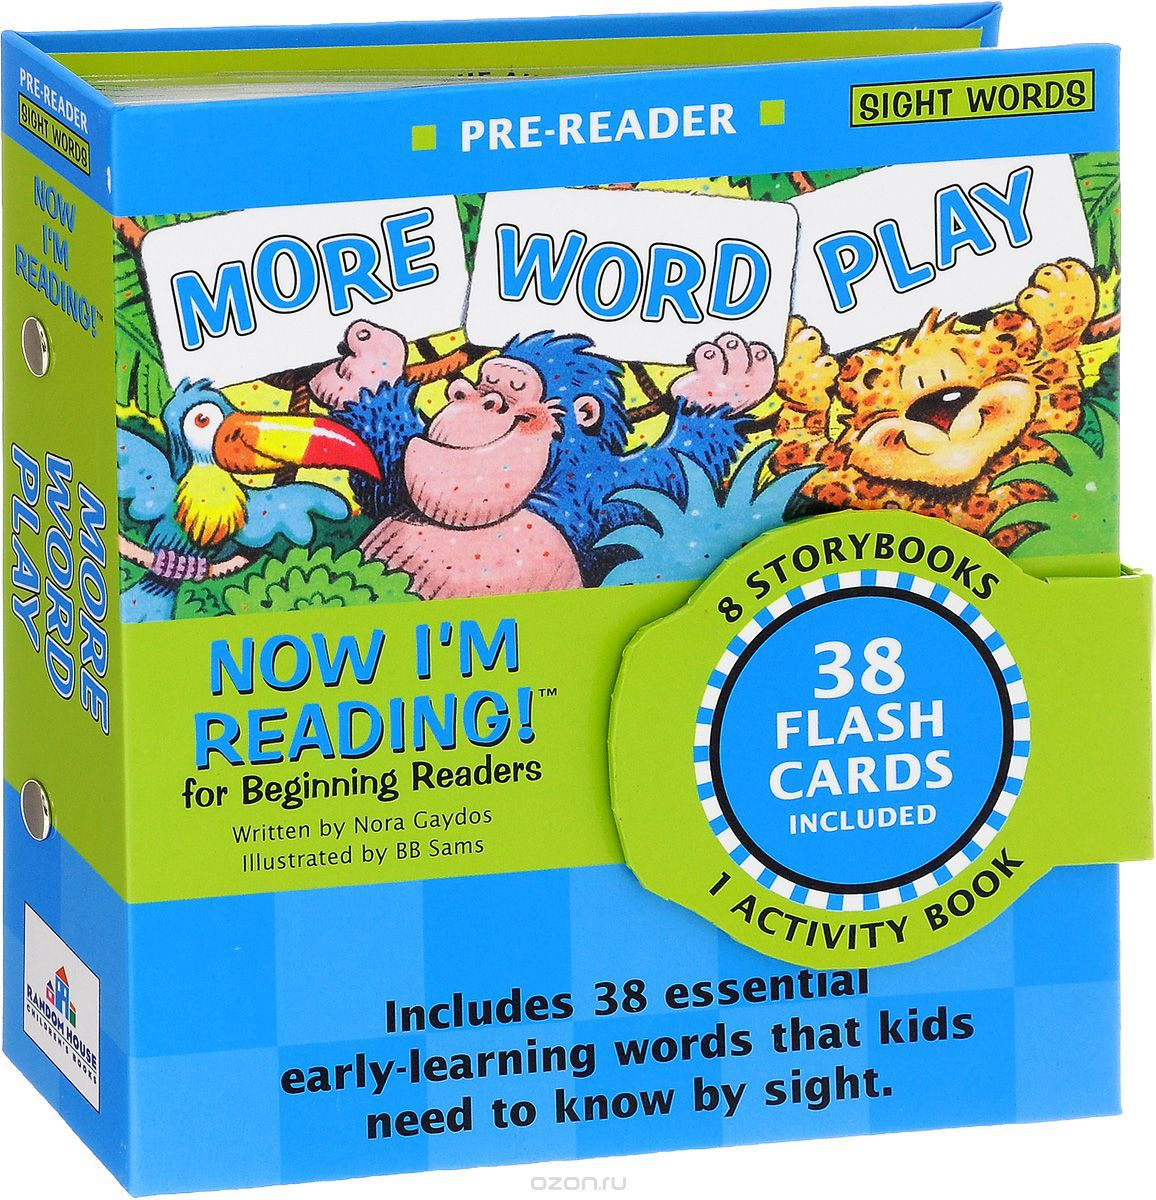 Now I'm Reading!: TNow I'm Reading! Pre-Reader: More Word Play he Best Of Phonics And Literature